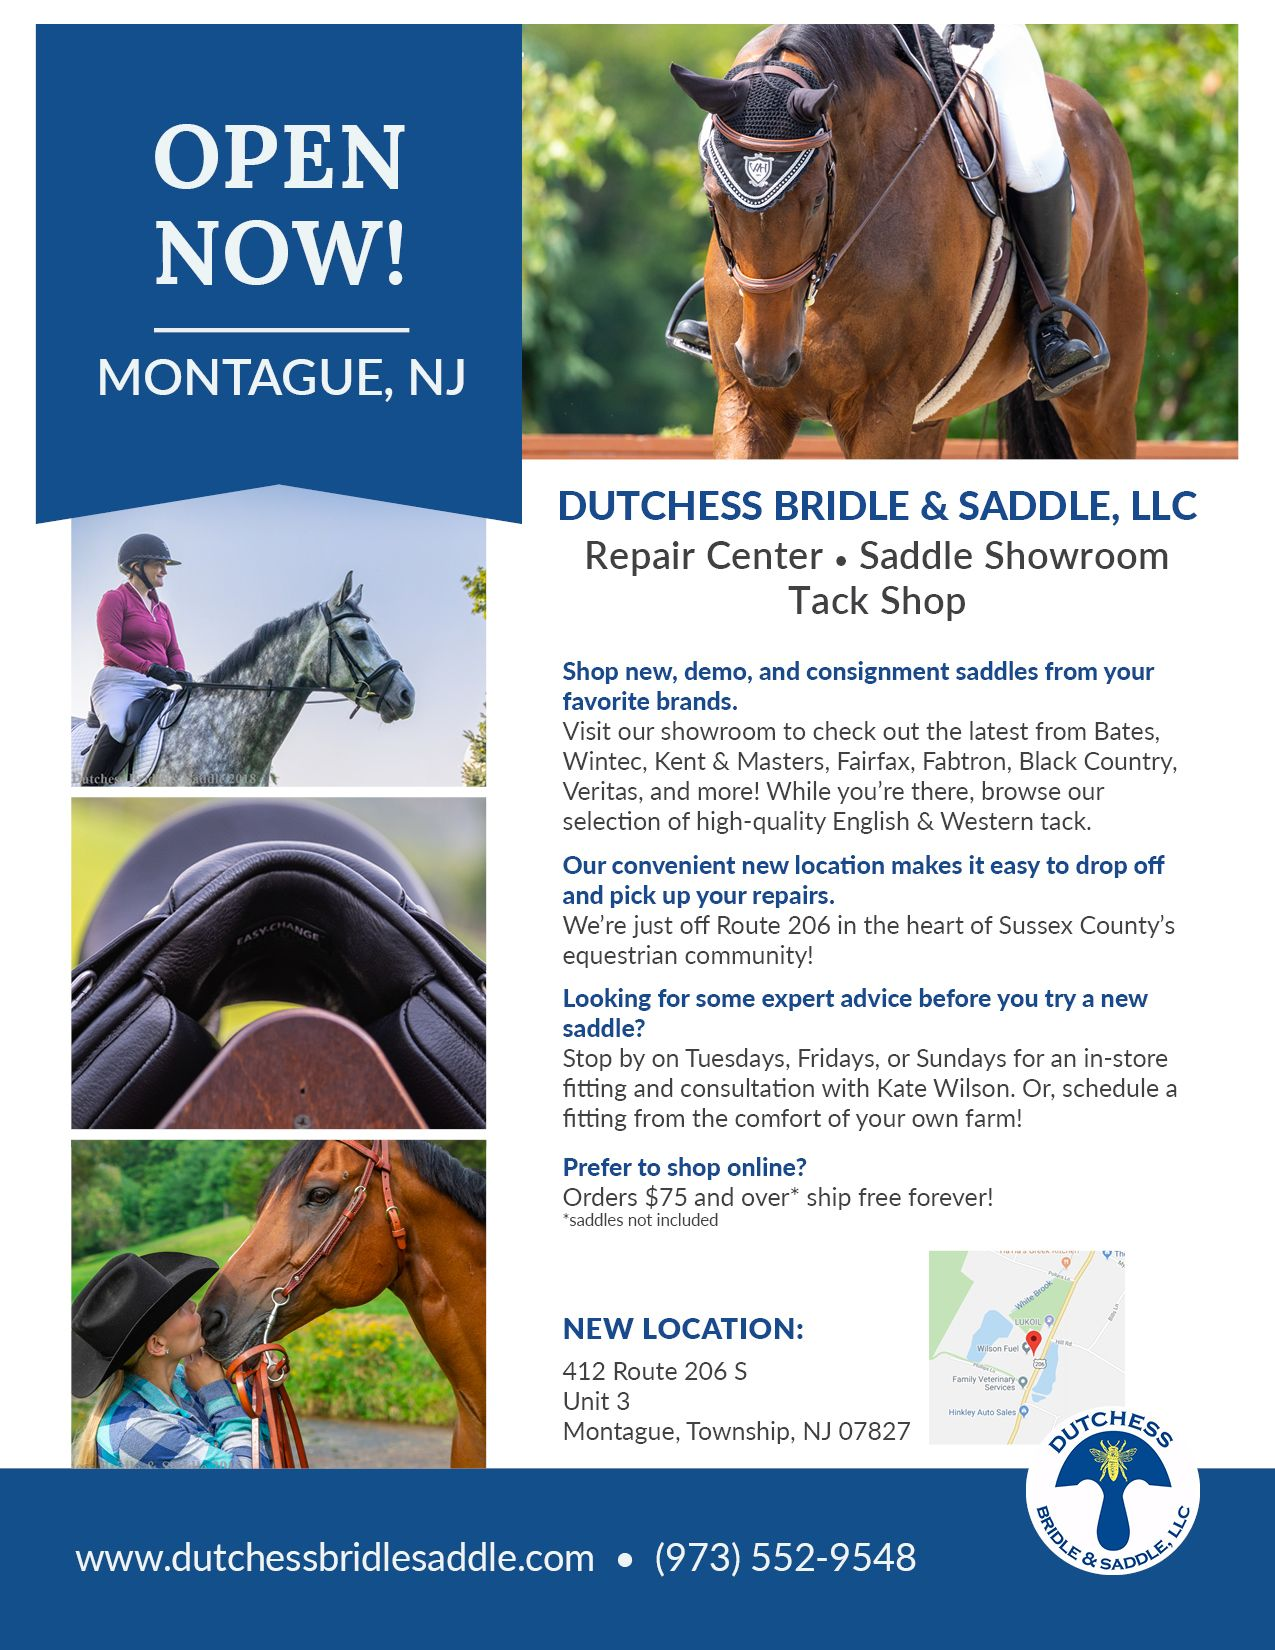 Dutchess Bridle & Saddle is now OPEN  We offer new & used